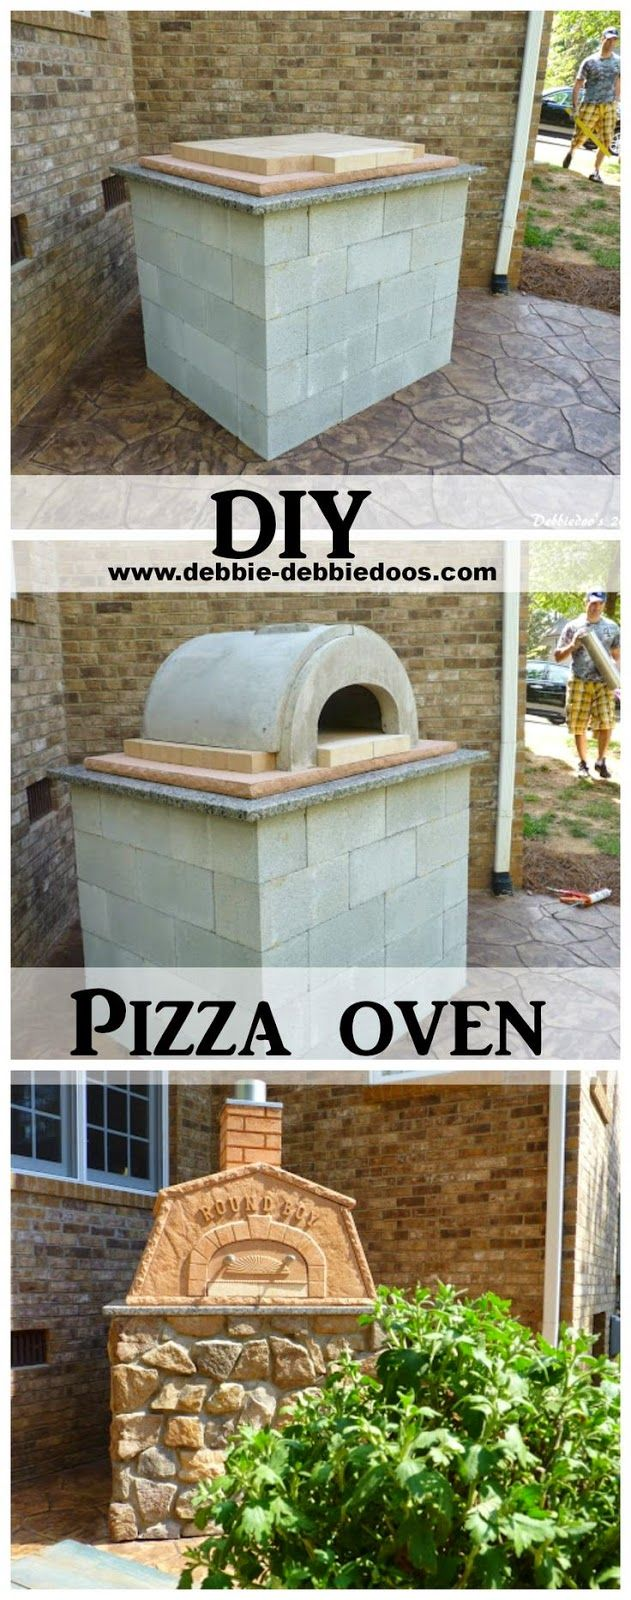 Best 25+ Fire pit pizza ideas on Pinterest | Fire pit oven, Oven ...